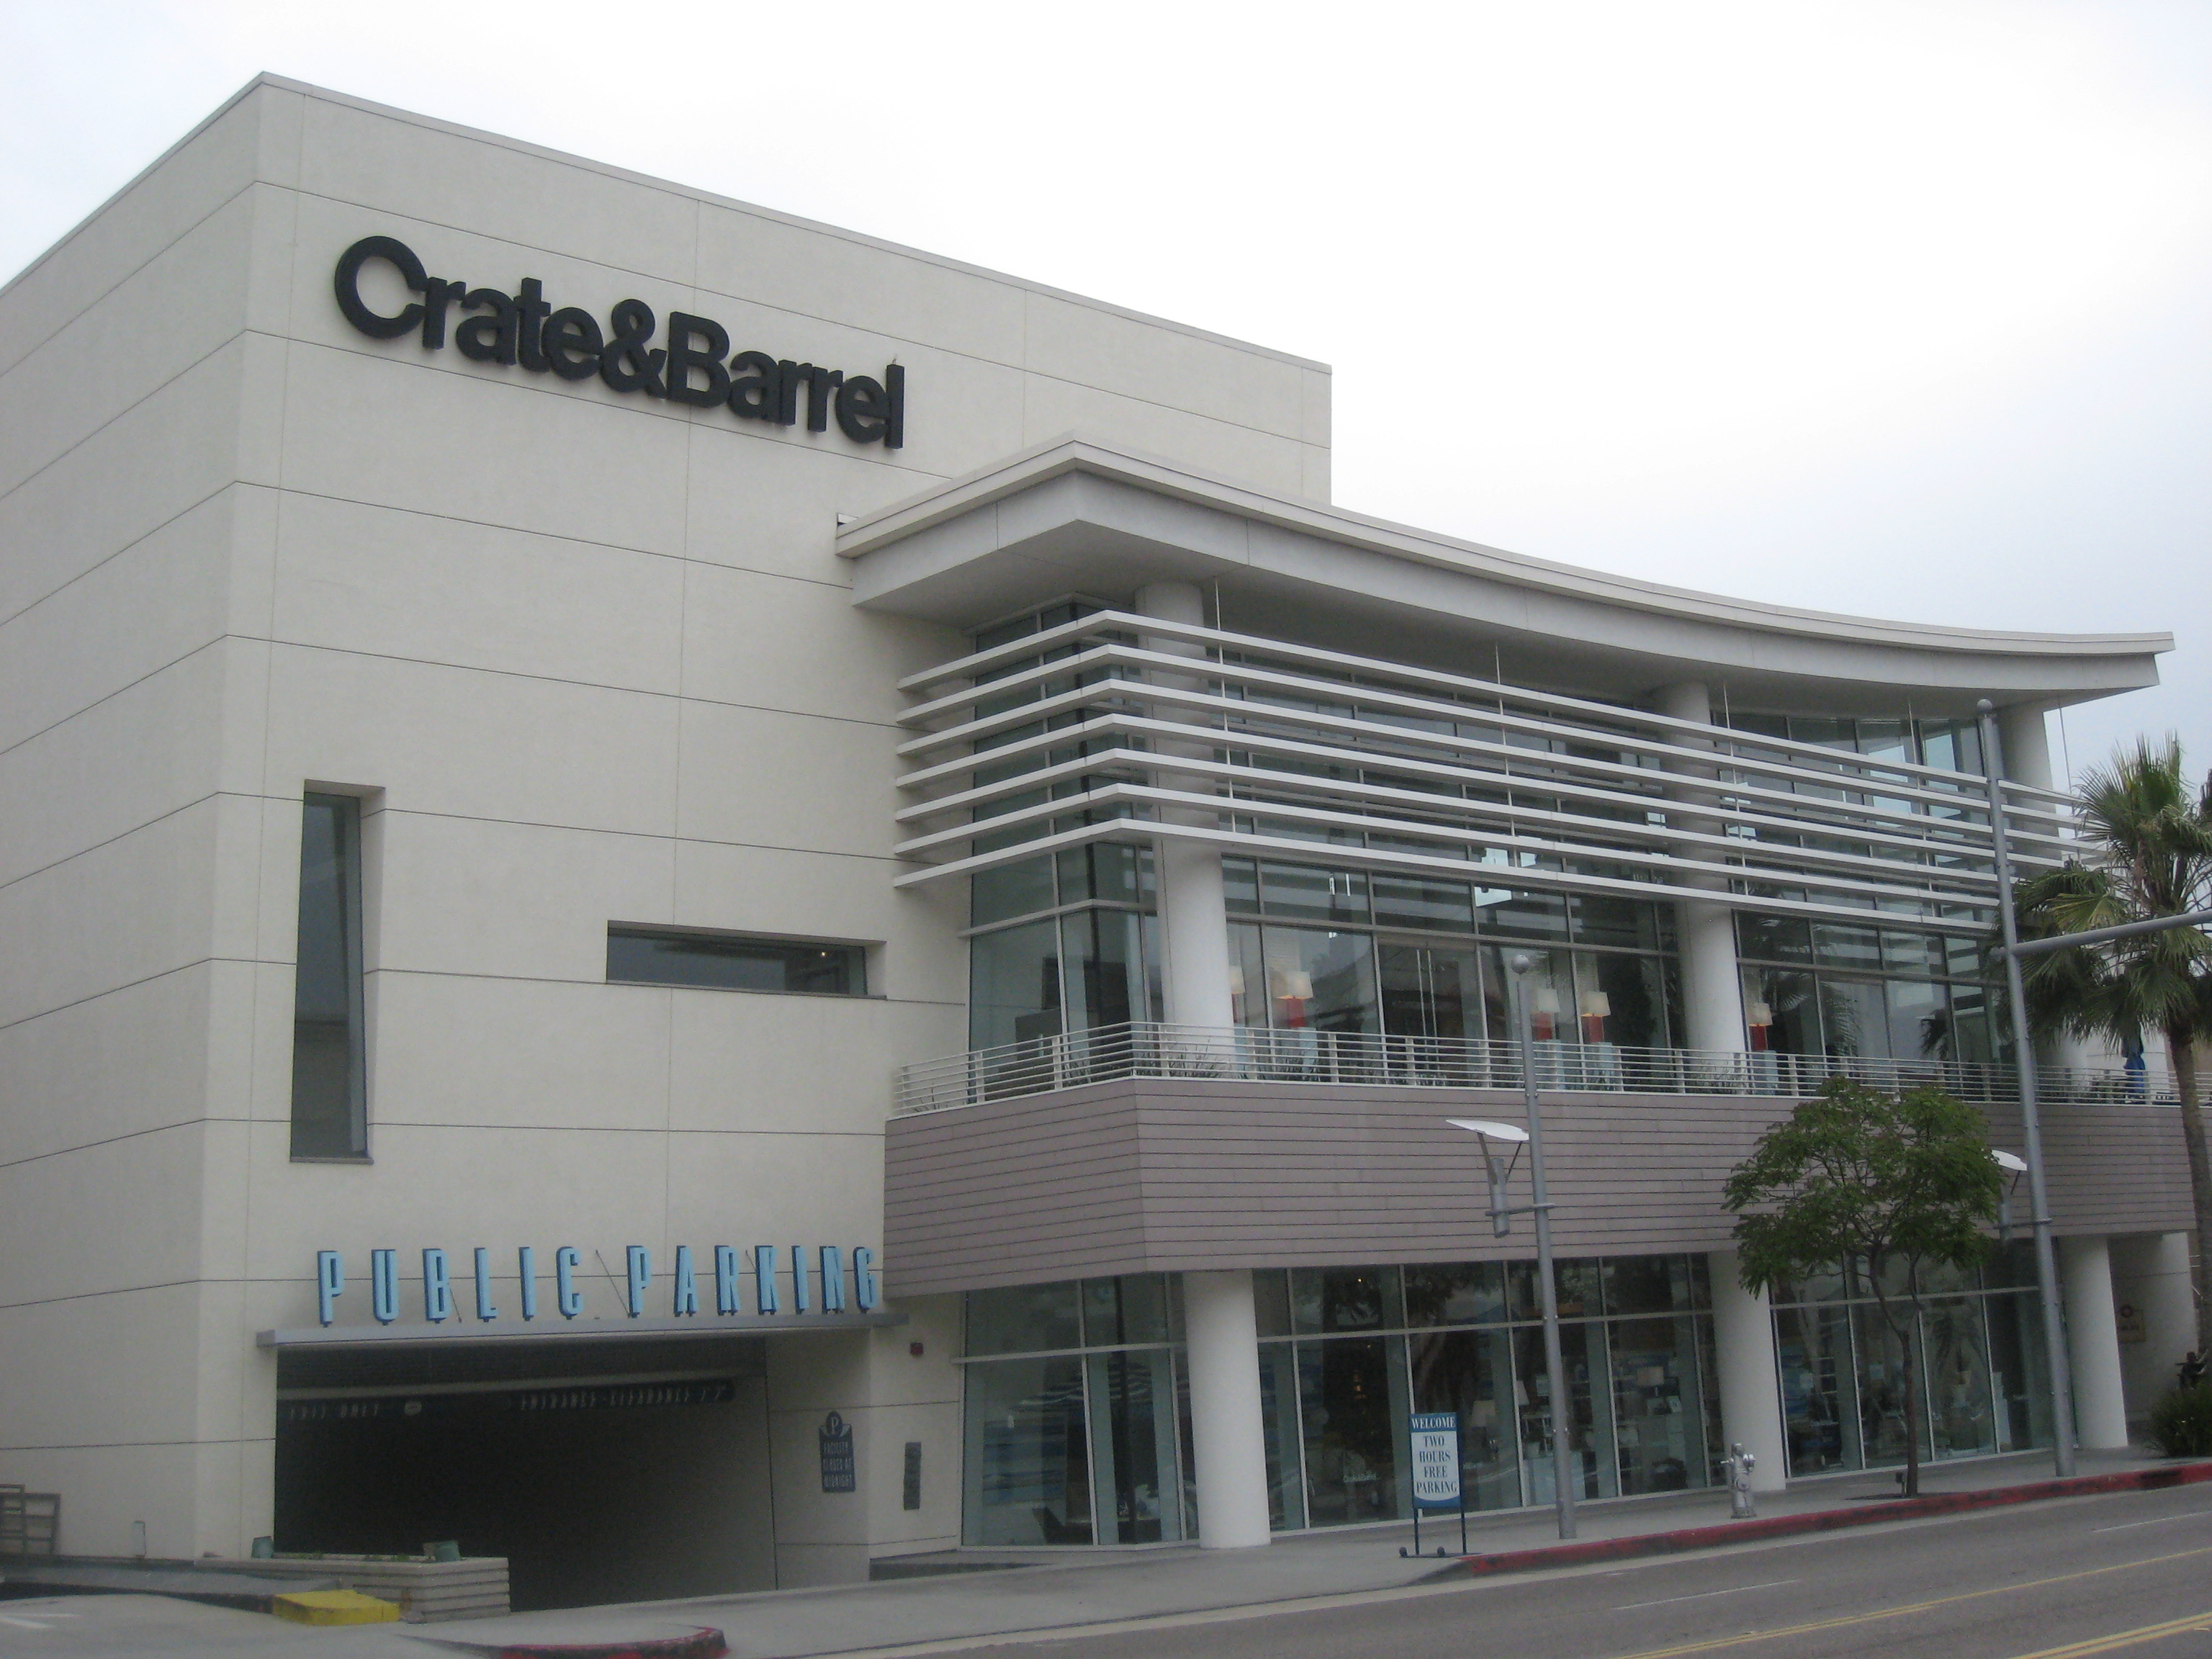 Crate & Barrel calling on local school students for creative designs